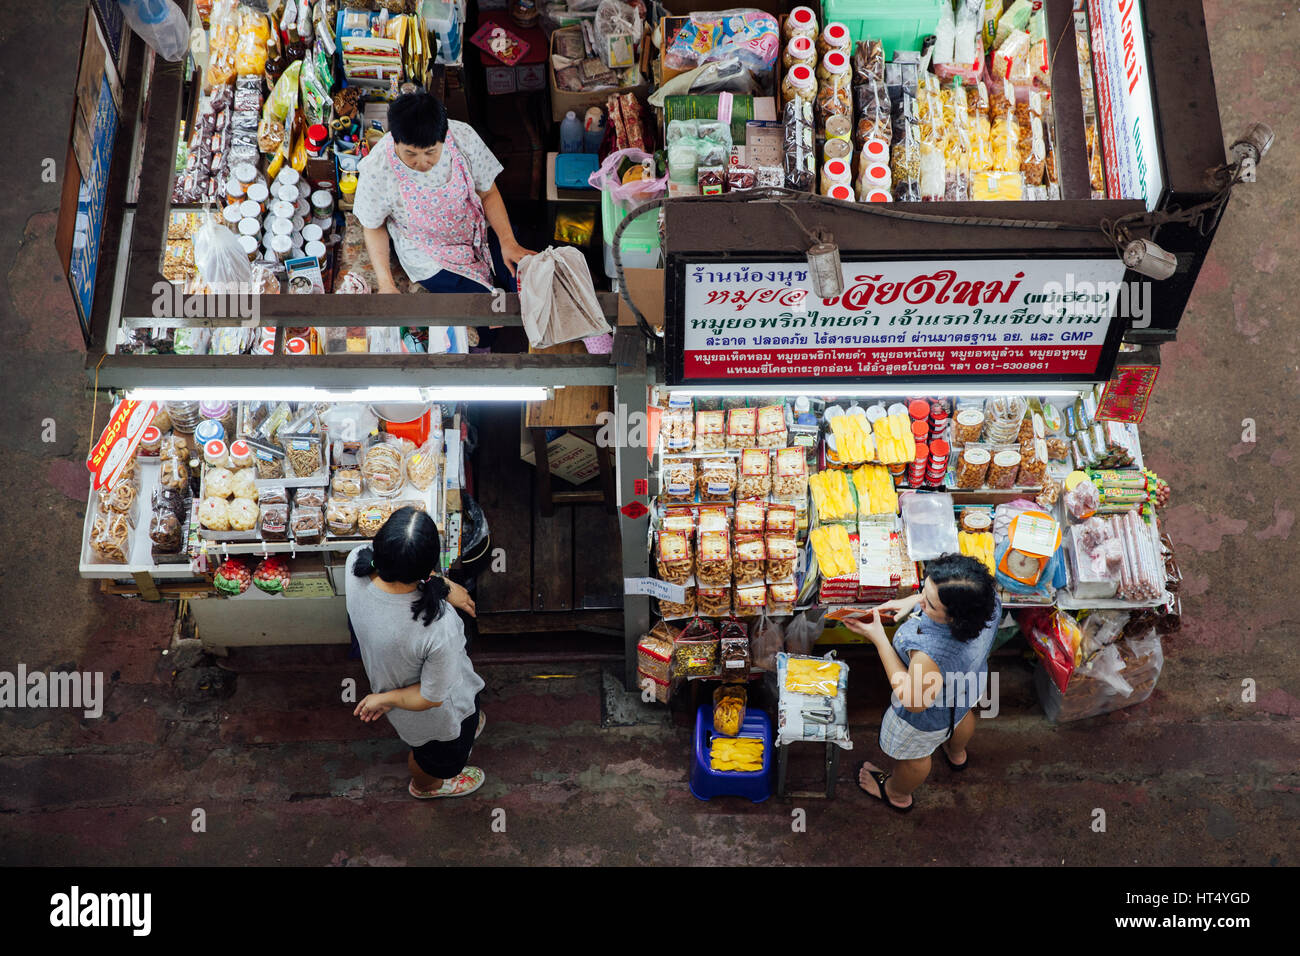 Chiang Mai, Thailand - August 27, 2016:  The group of vendors wait for customers at the Warorot market on August - Stock Image